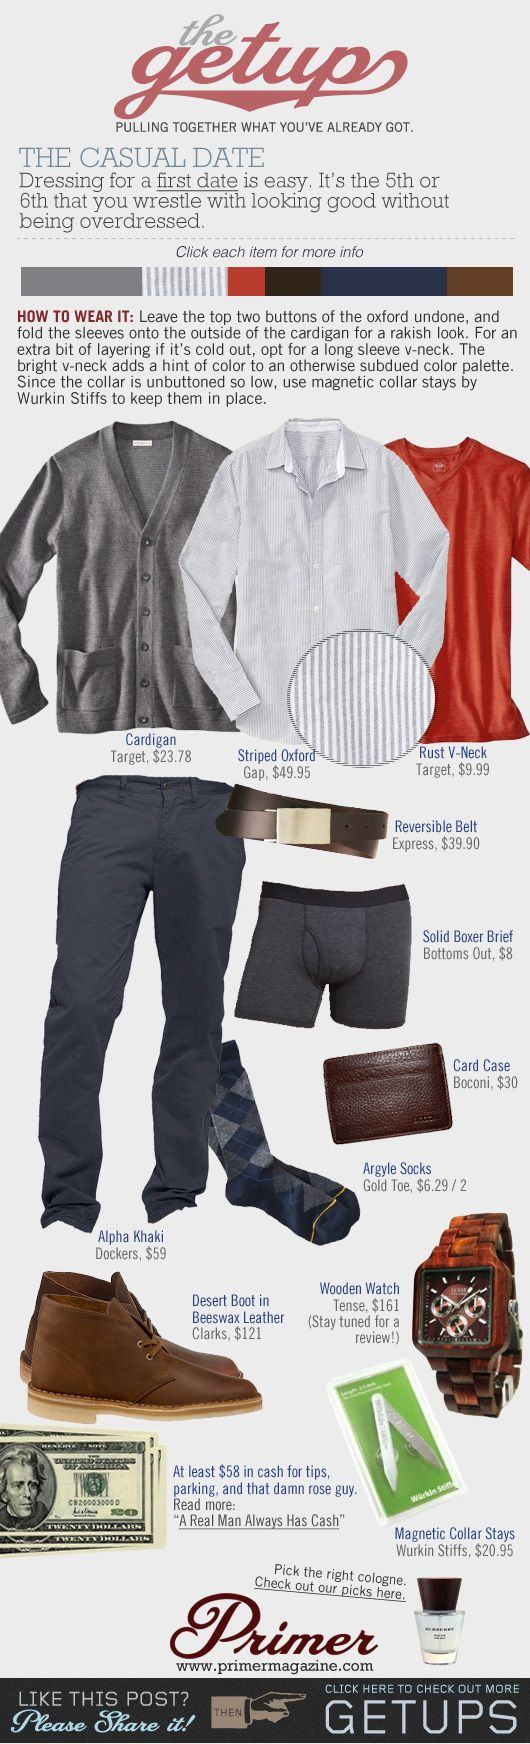 The Getup: The Casual Date - Primer